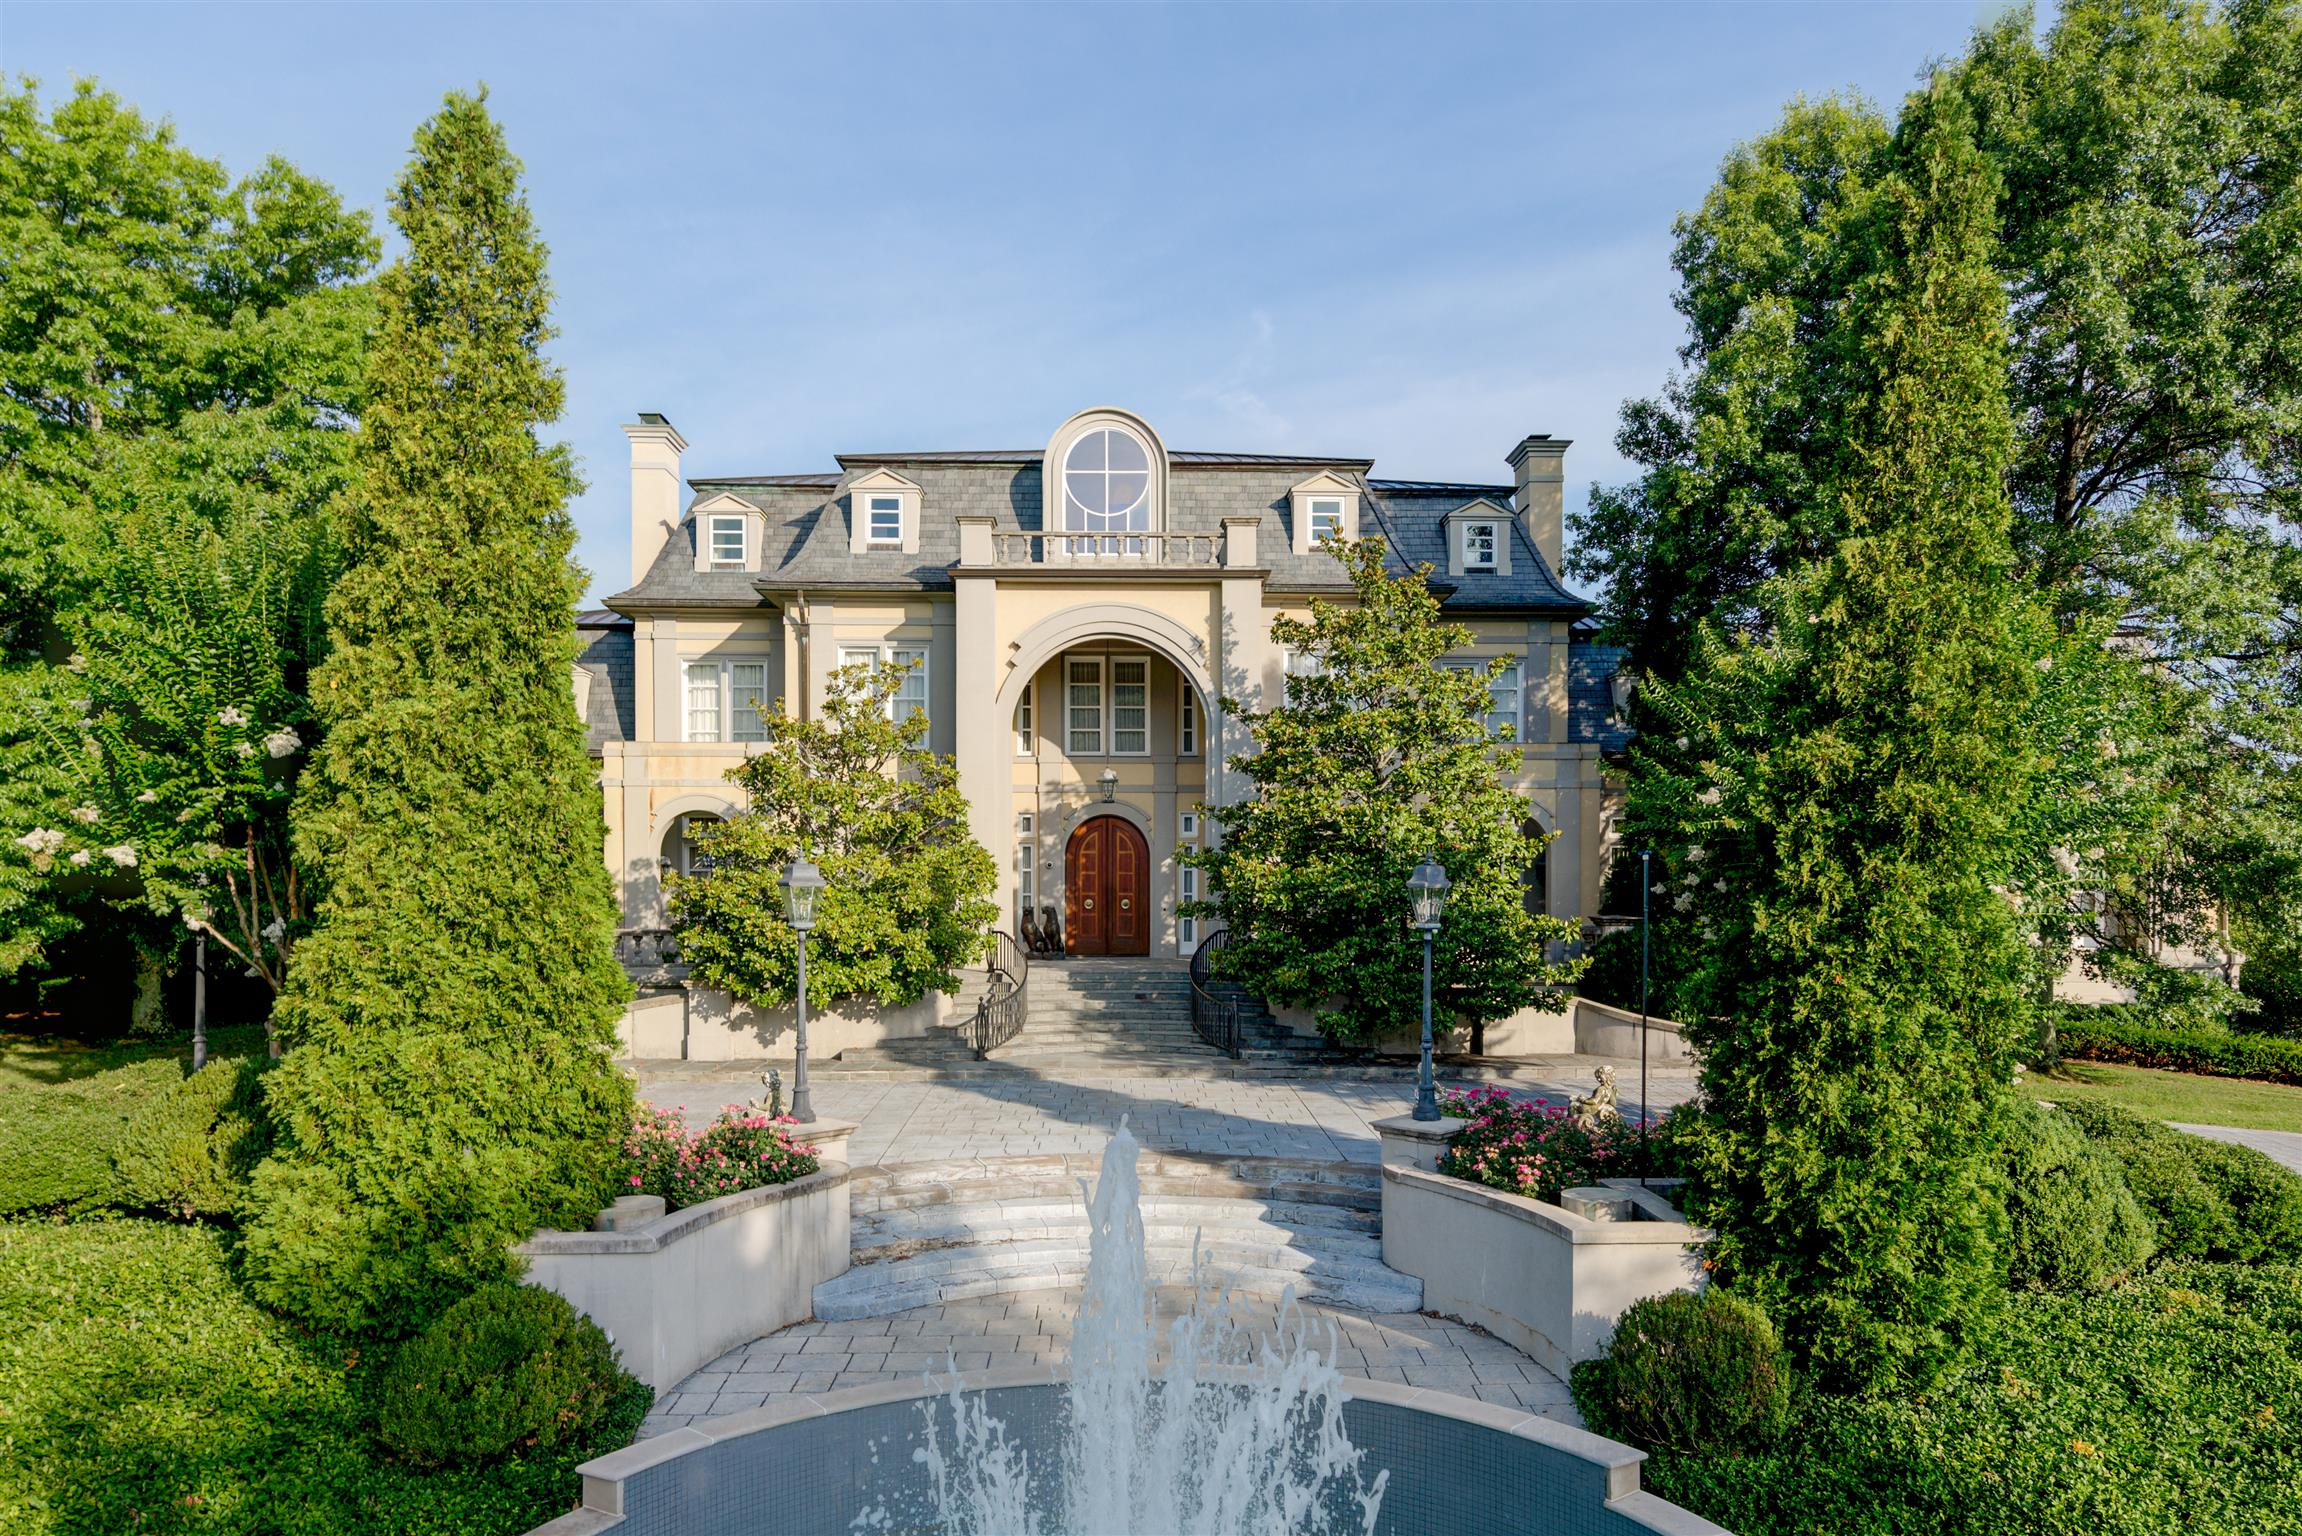 Nashville's famous 'Fountain House' an 18,000 sq.ft. in-town landmark estate nestled on 9.66 park like acres complete with in-ground pool/spa and tennis court. This French chateau style estate features 8 bdrms, 6 bths, 7 car gar., golf tee box, wine cellar, gym, in-law qtrs. complete w/ 3 bdrms, full bath and kit. Stunning views and total privacy.